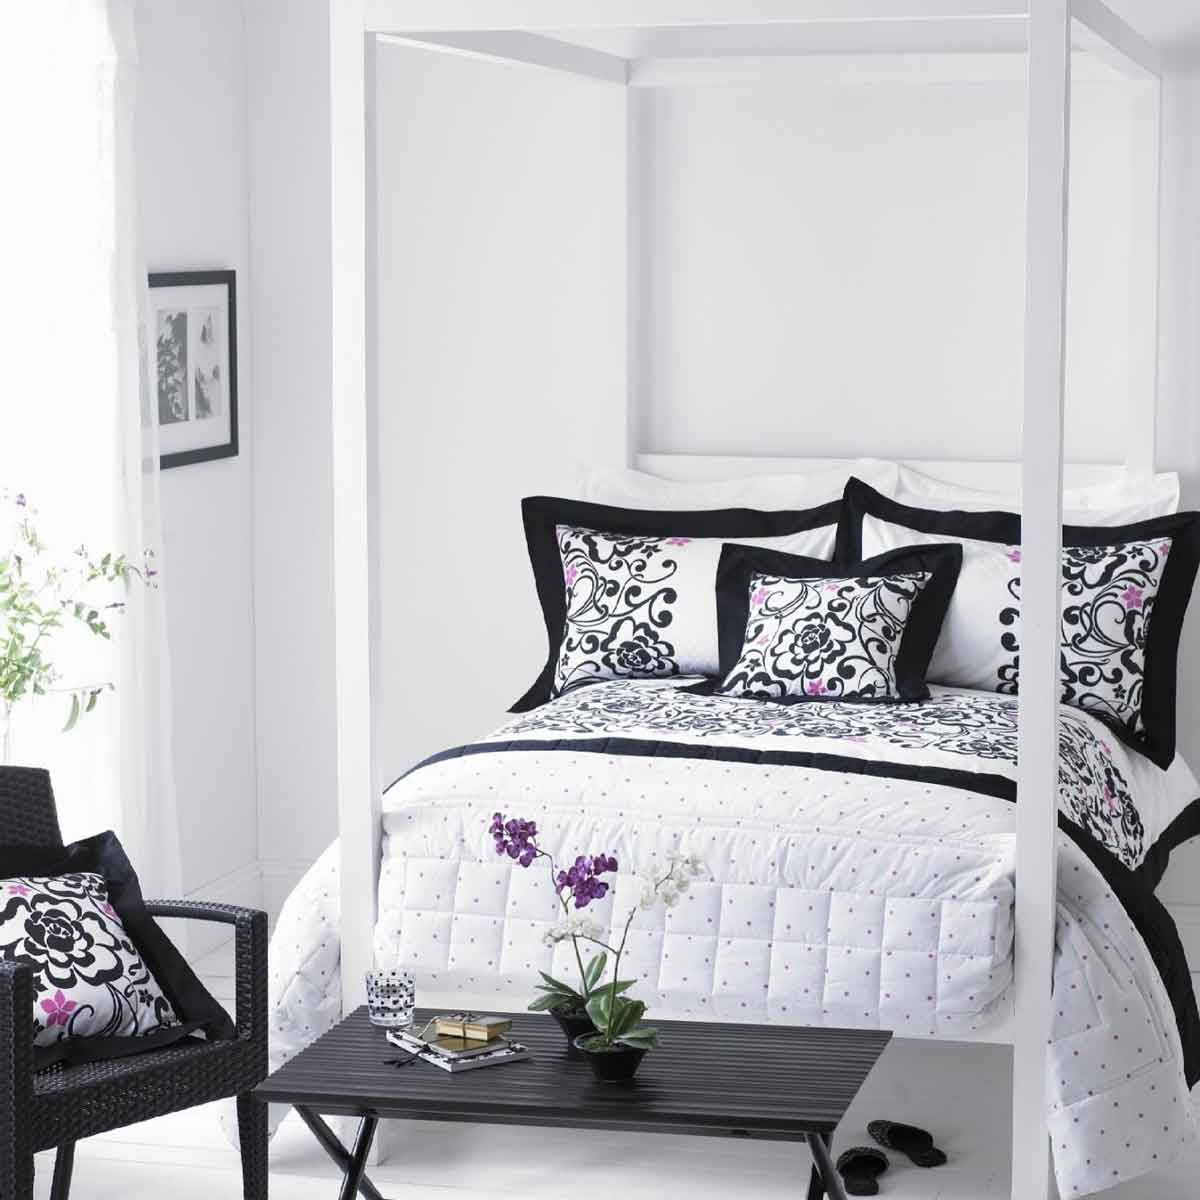 title | Grey Black And White Bedroom Ideas